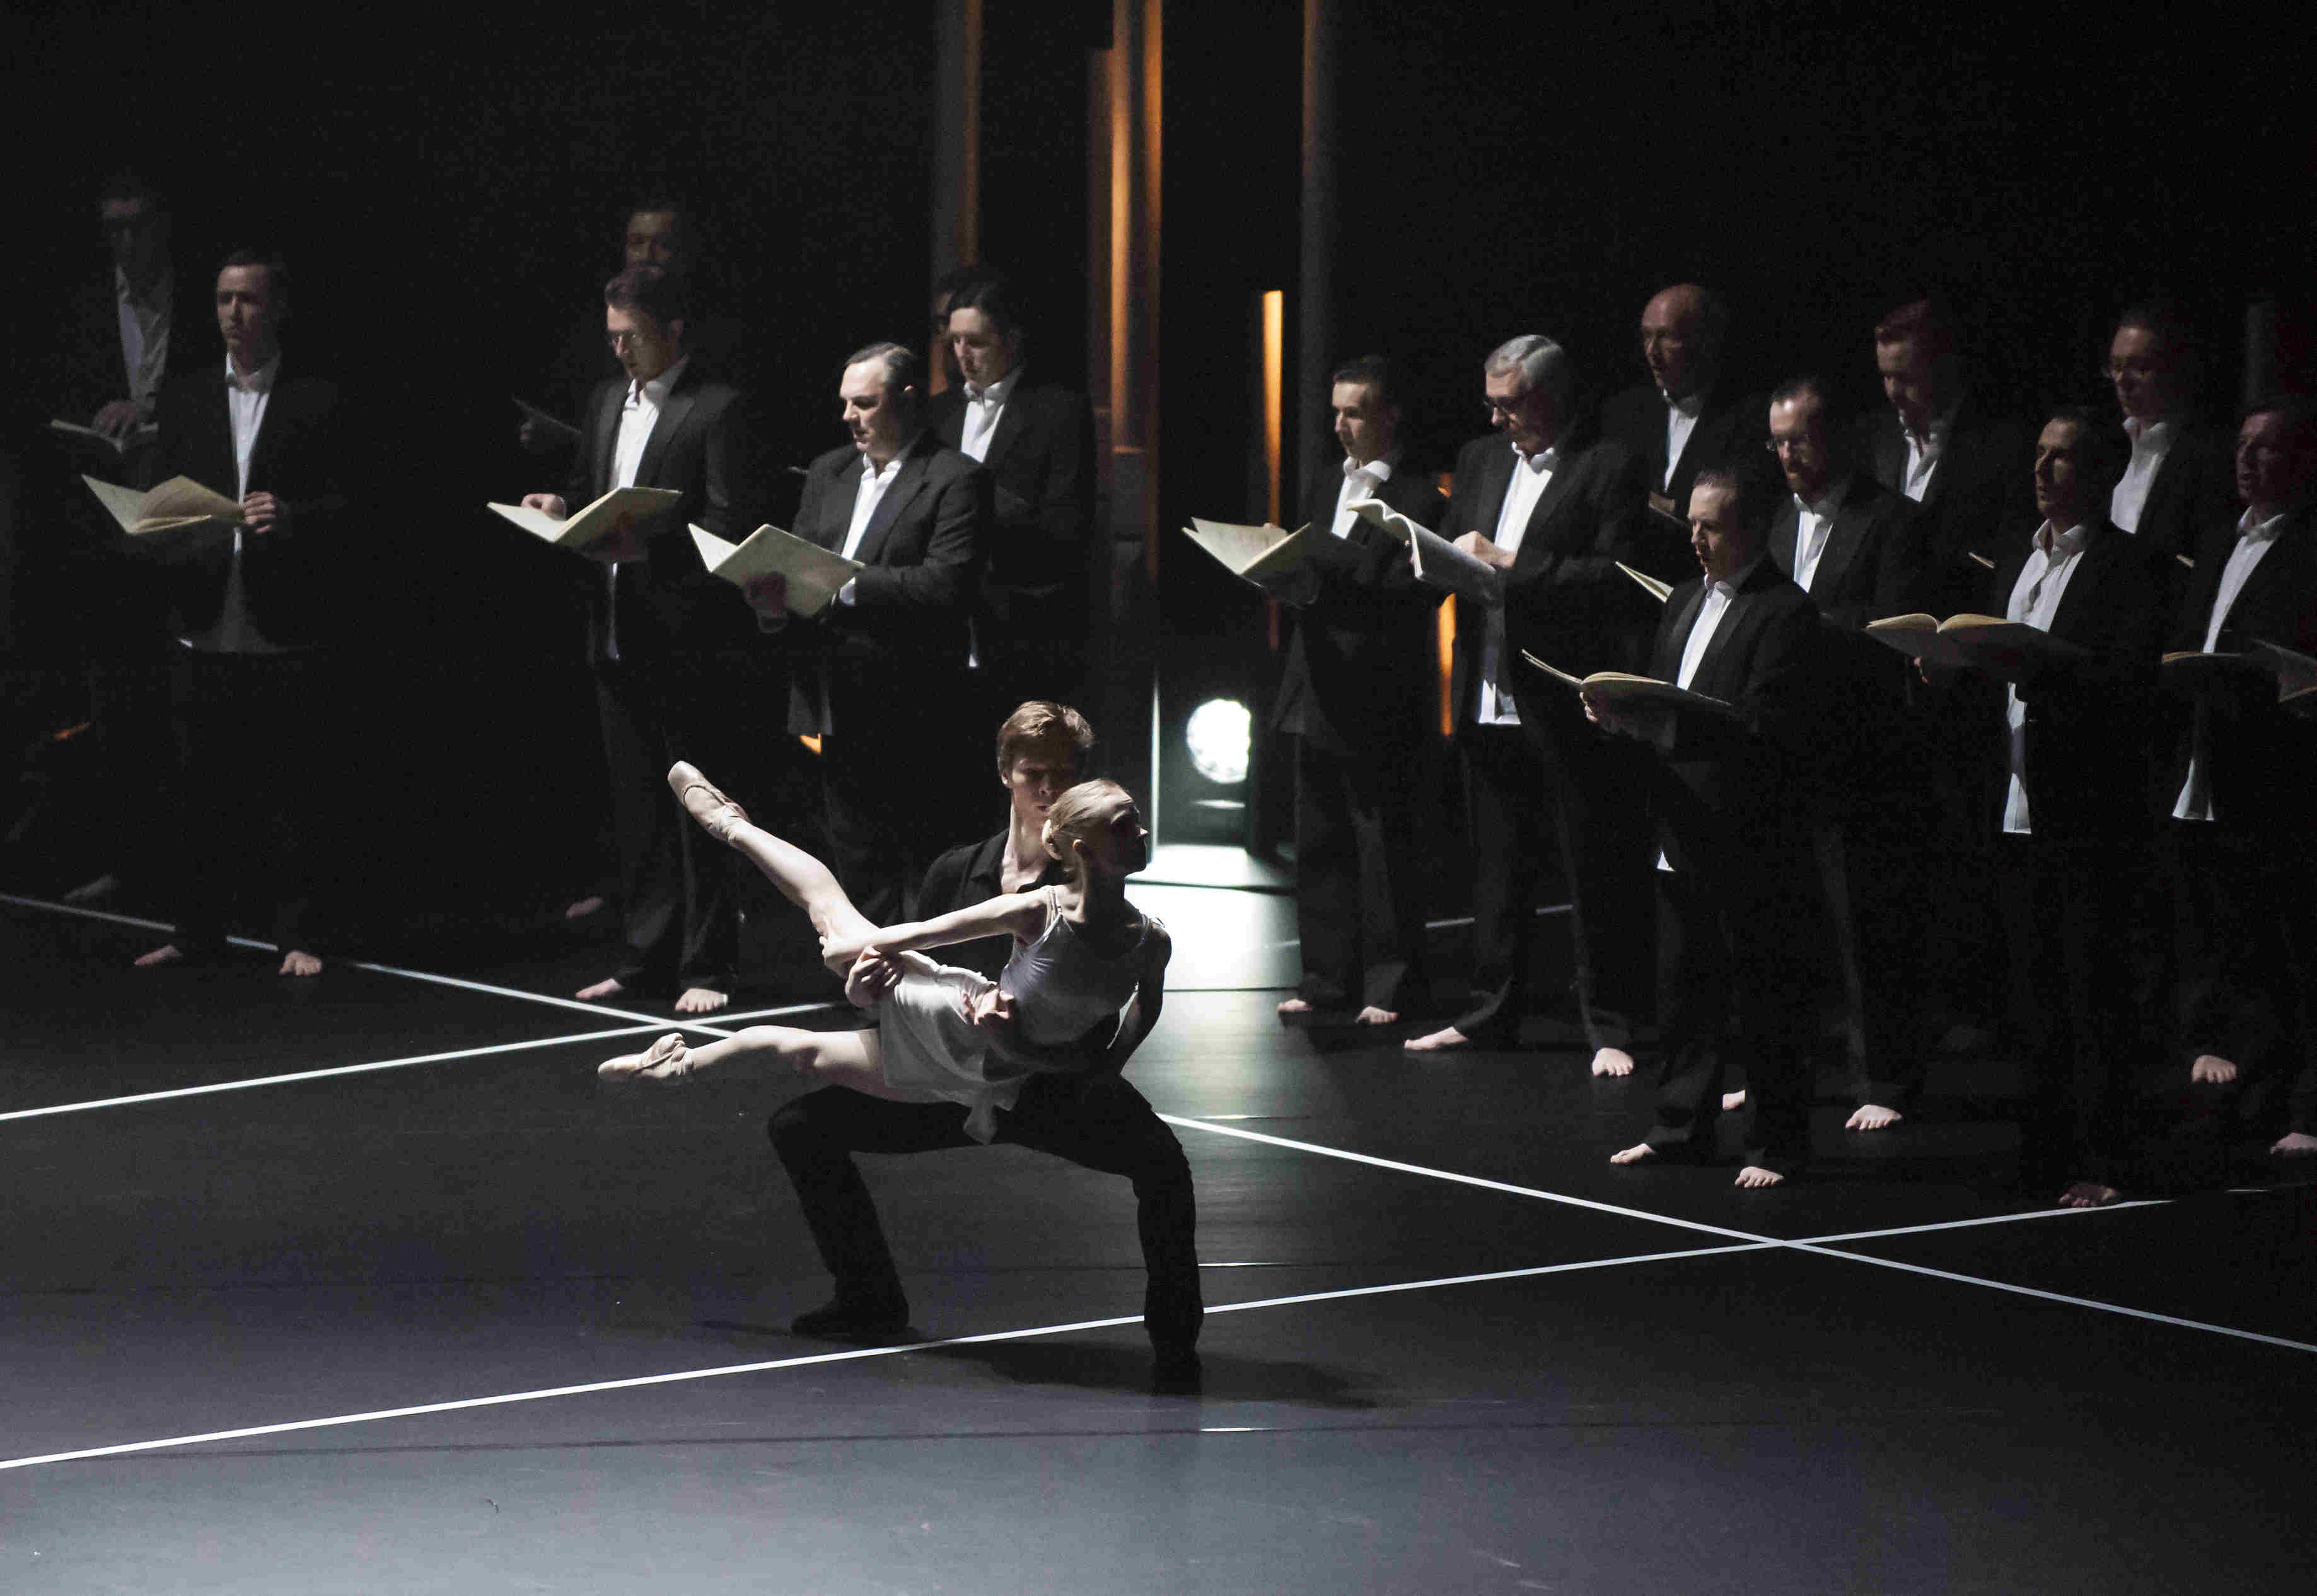 Karla Doorbar and Max Maslen dance in Duruflé's Requiem